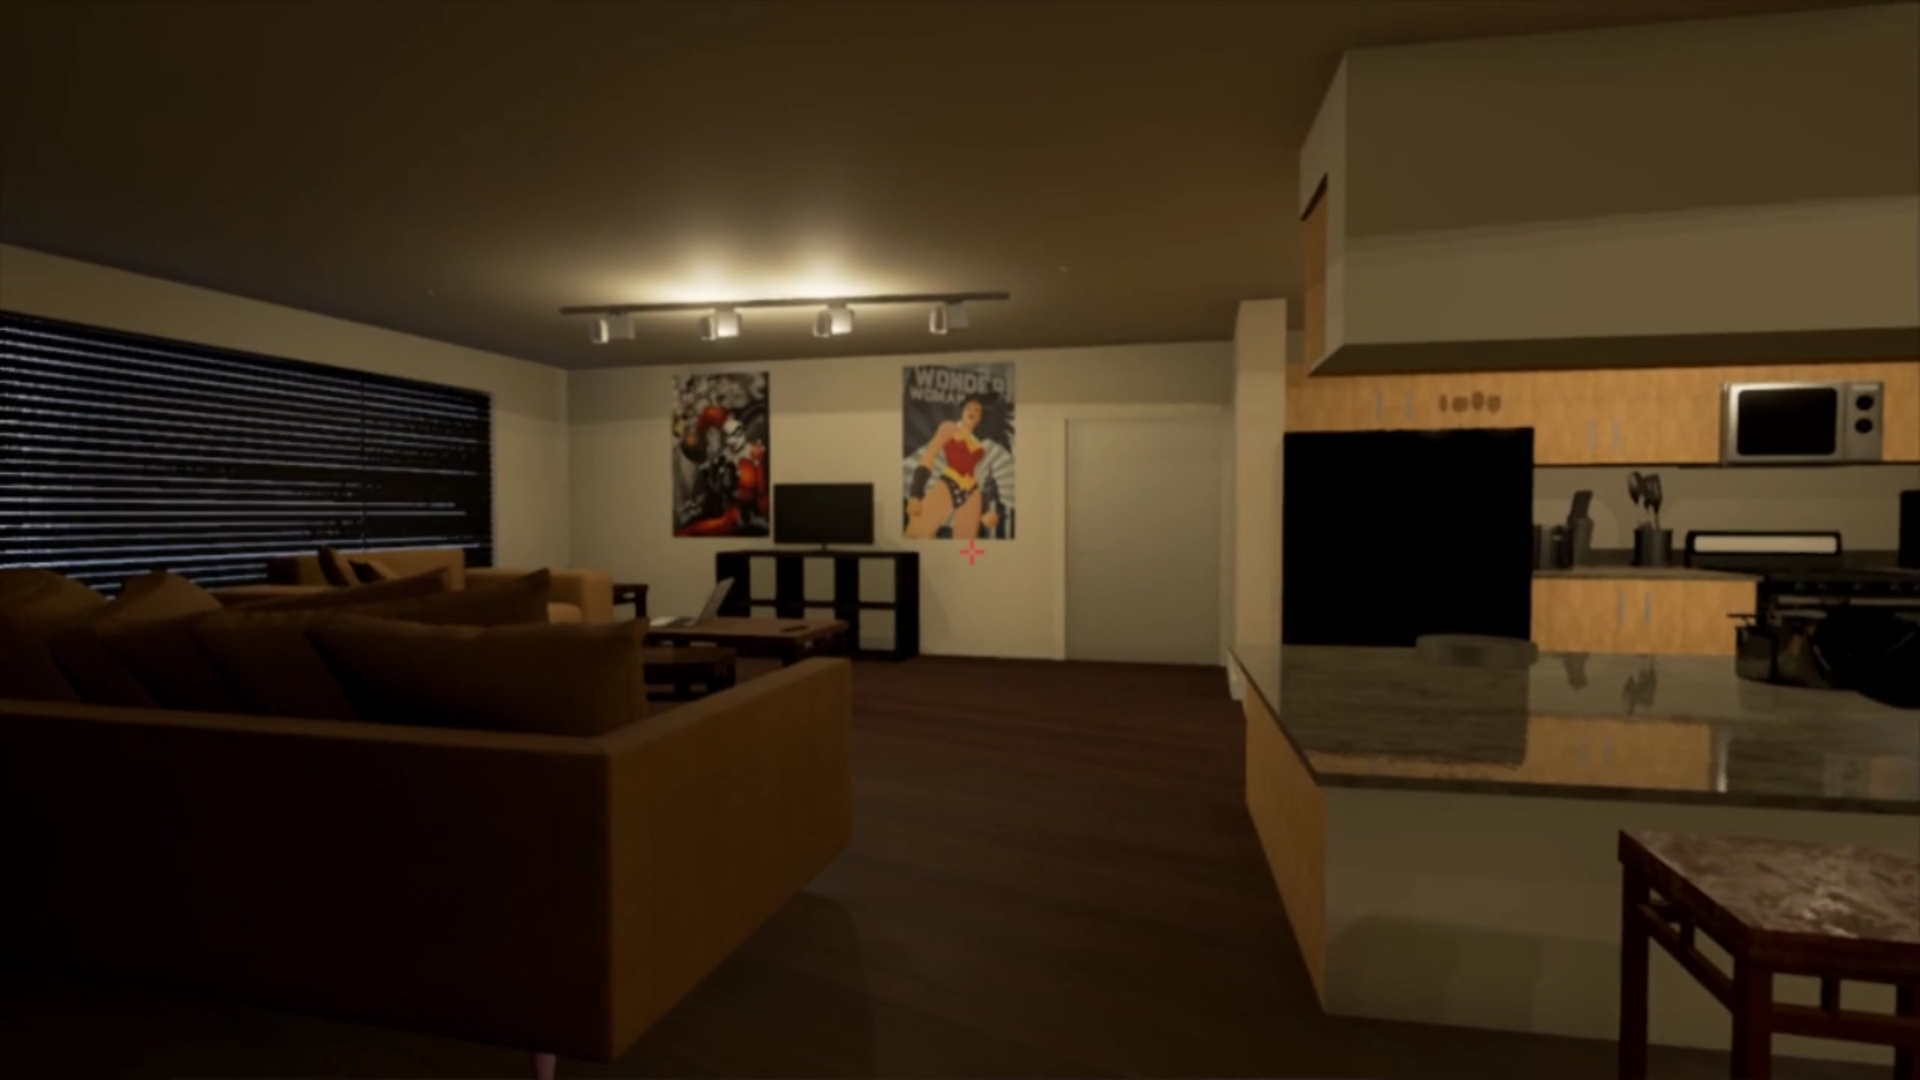 Apartment1: A model of an apartment and one of NovaKitten's very first projects in Unreal.